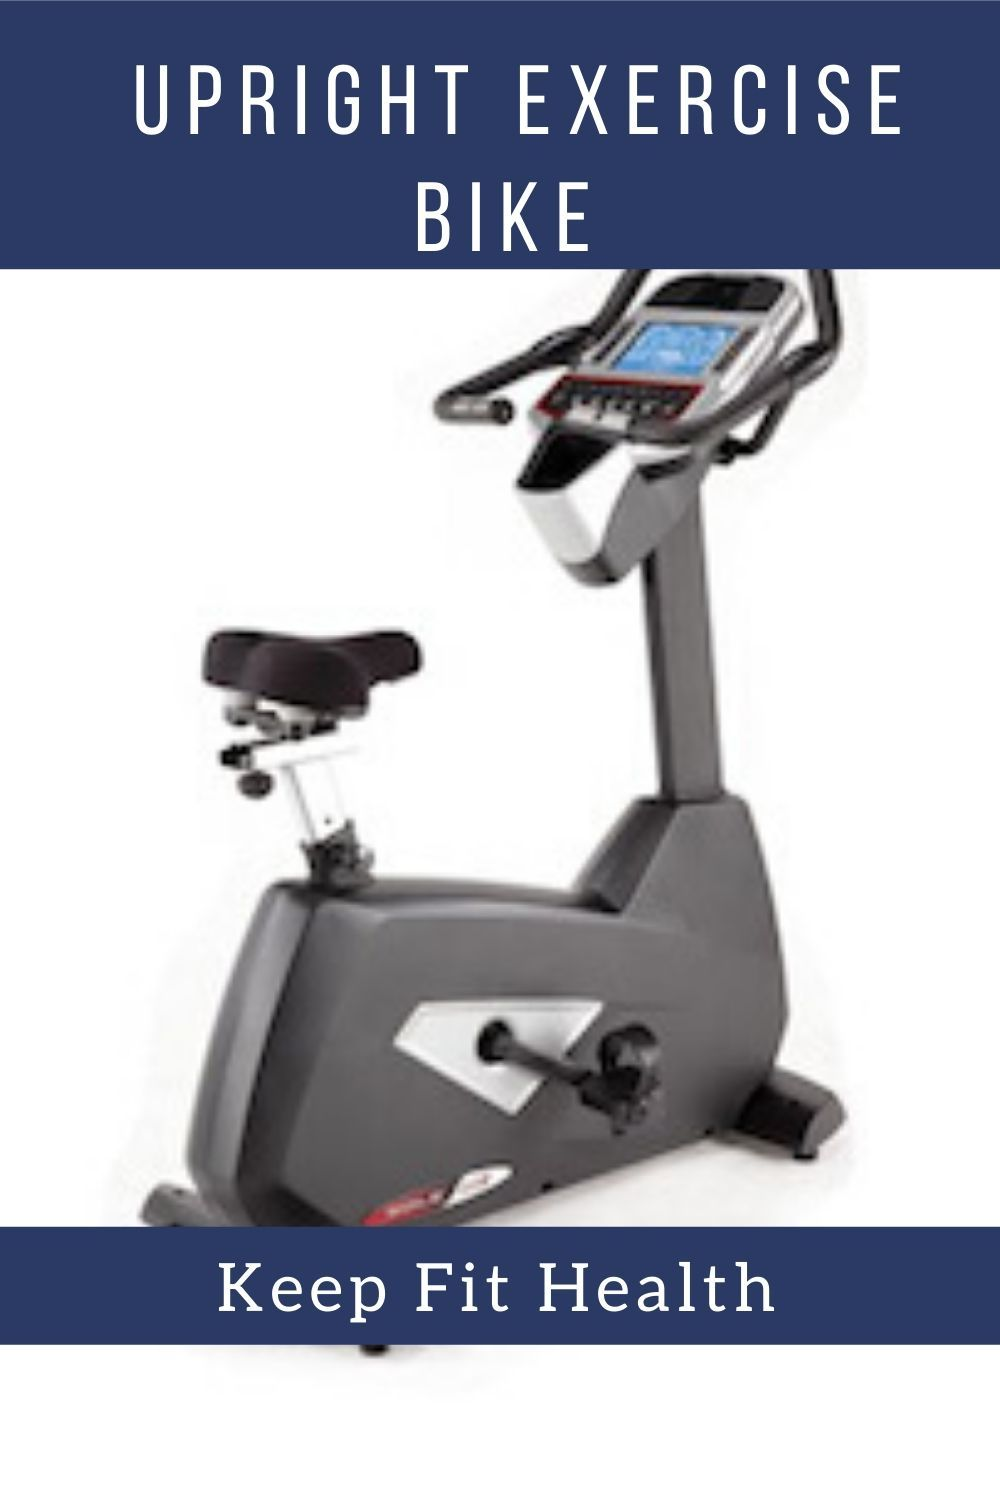 Best Upright Exercise Bike Review For 2020 In 2020 Biking